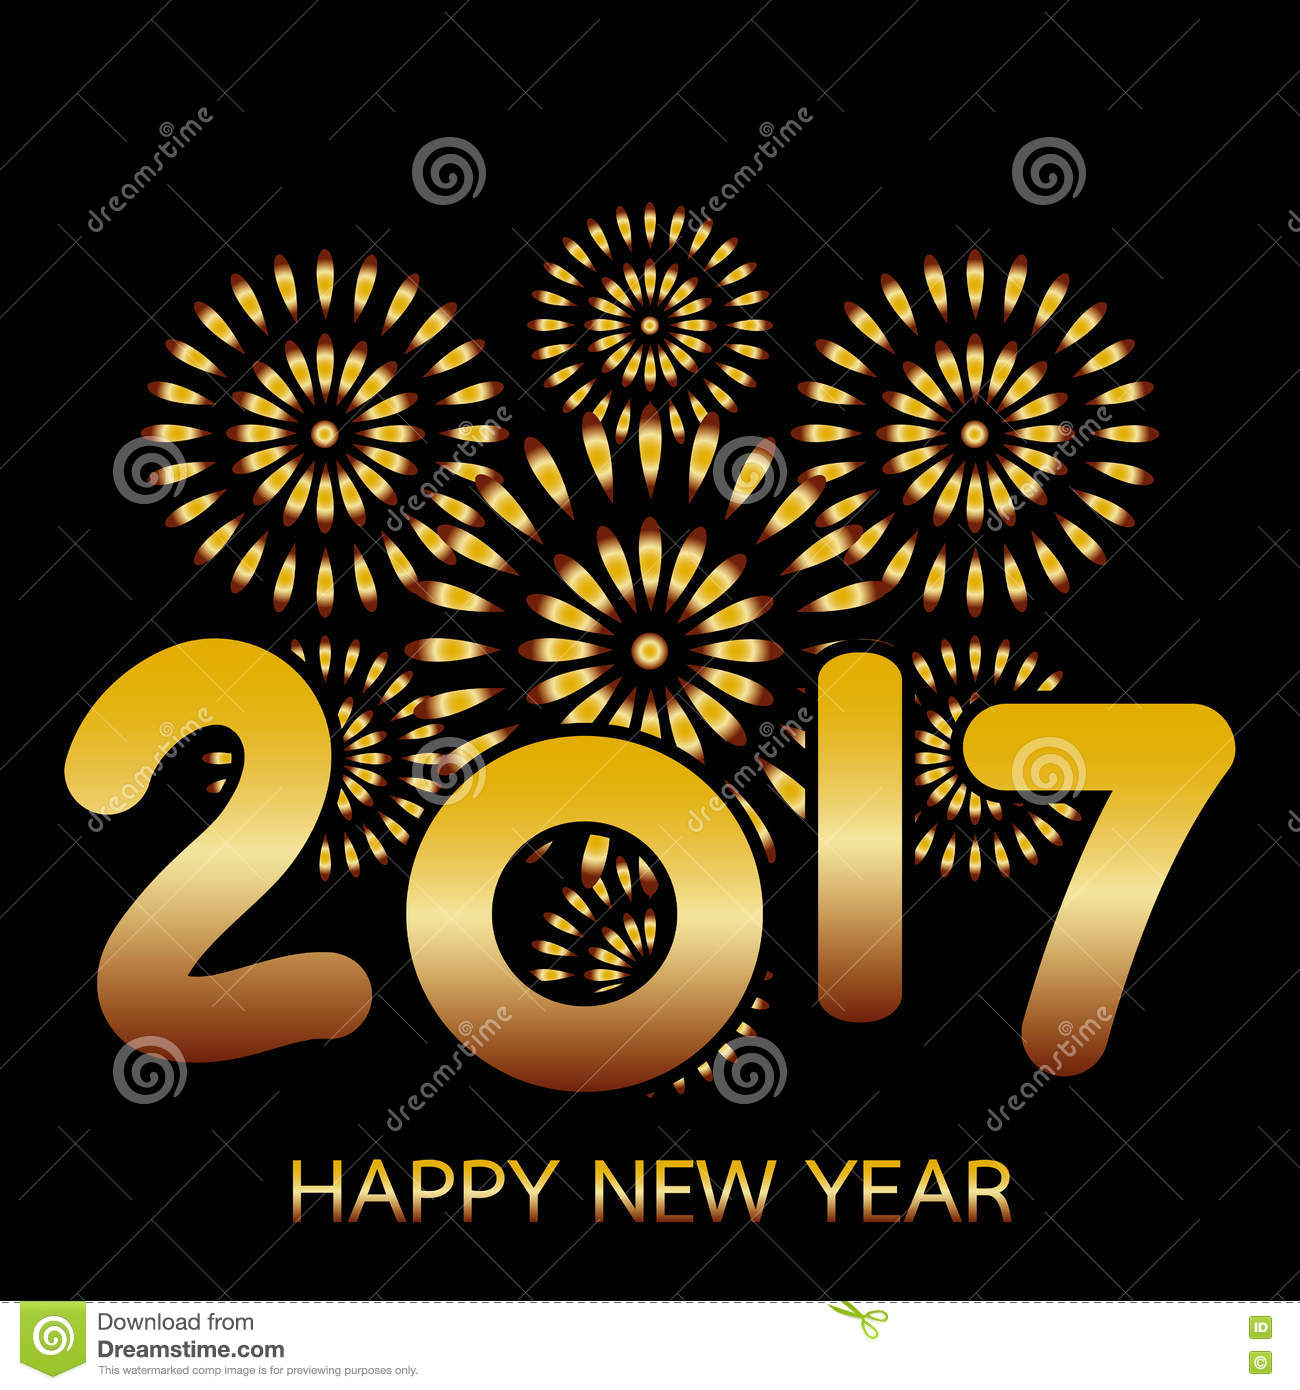 2017 Happy New Year Banner Stock Vector Illustration Of Year 82030906